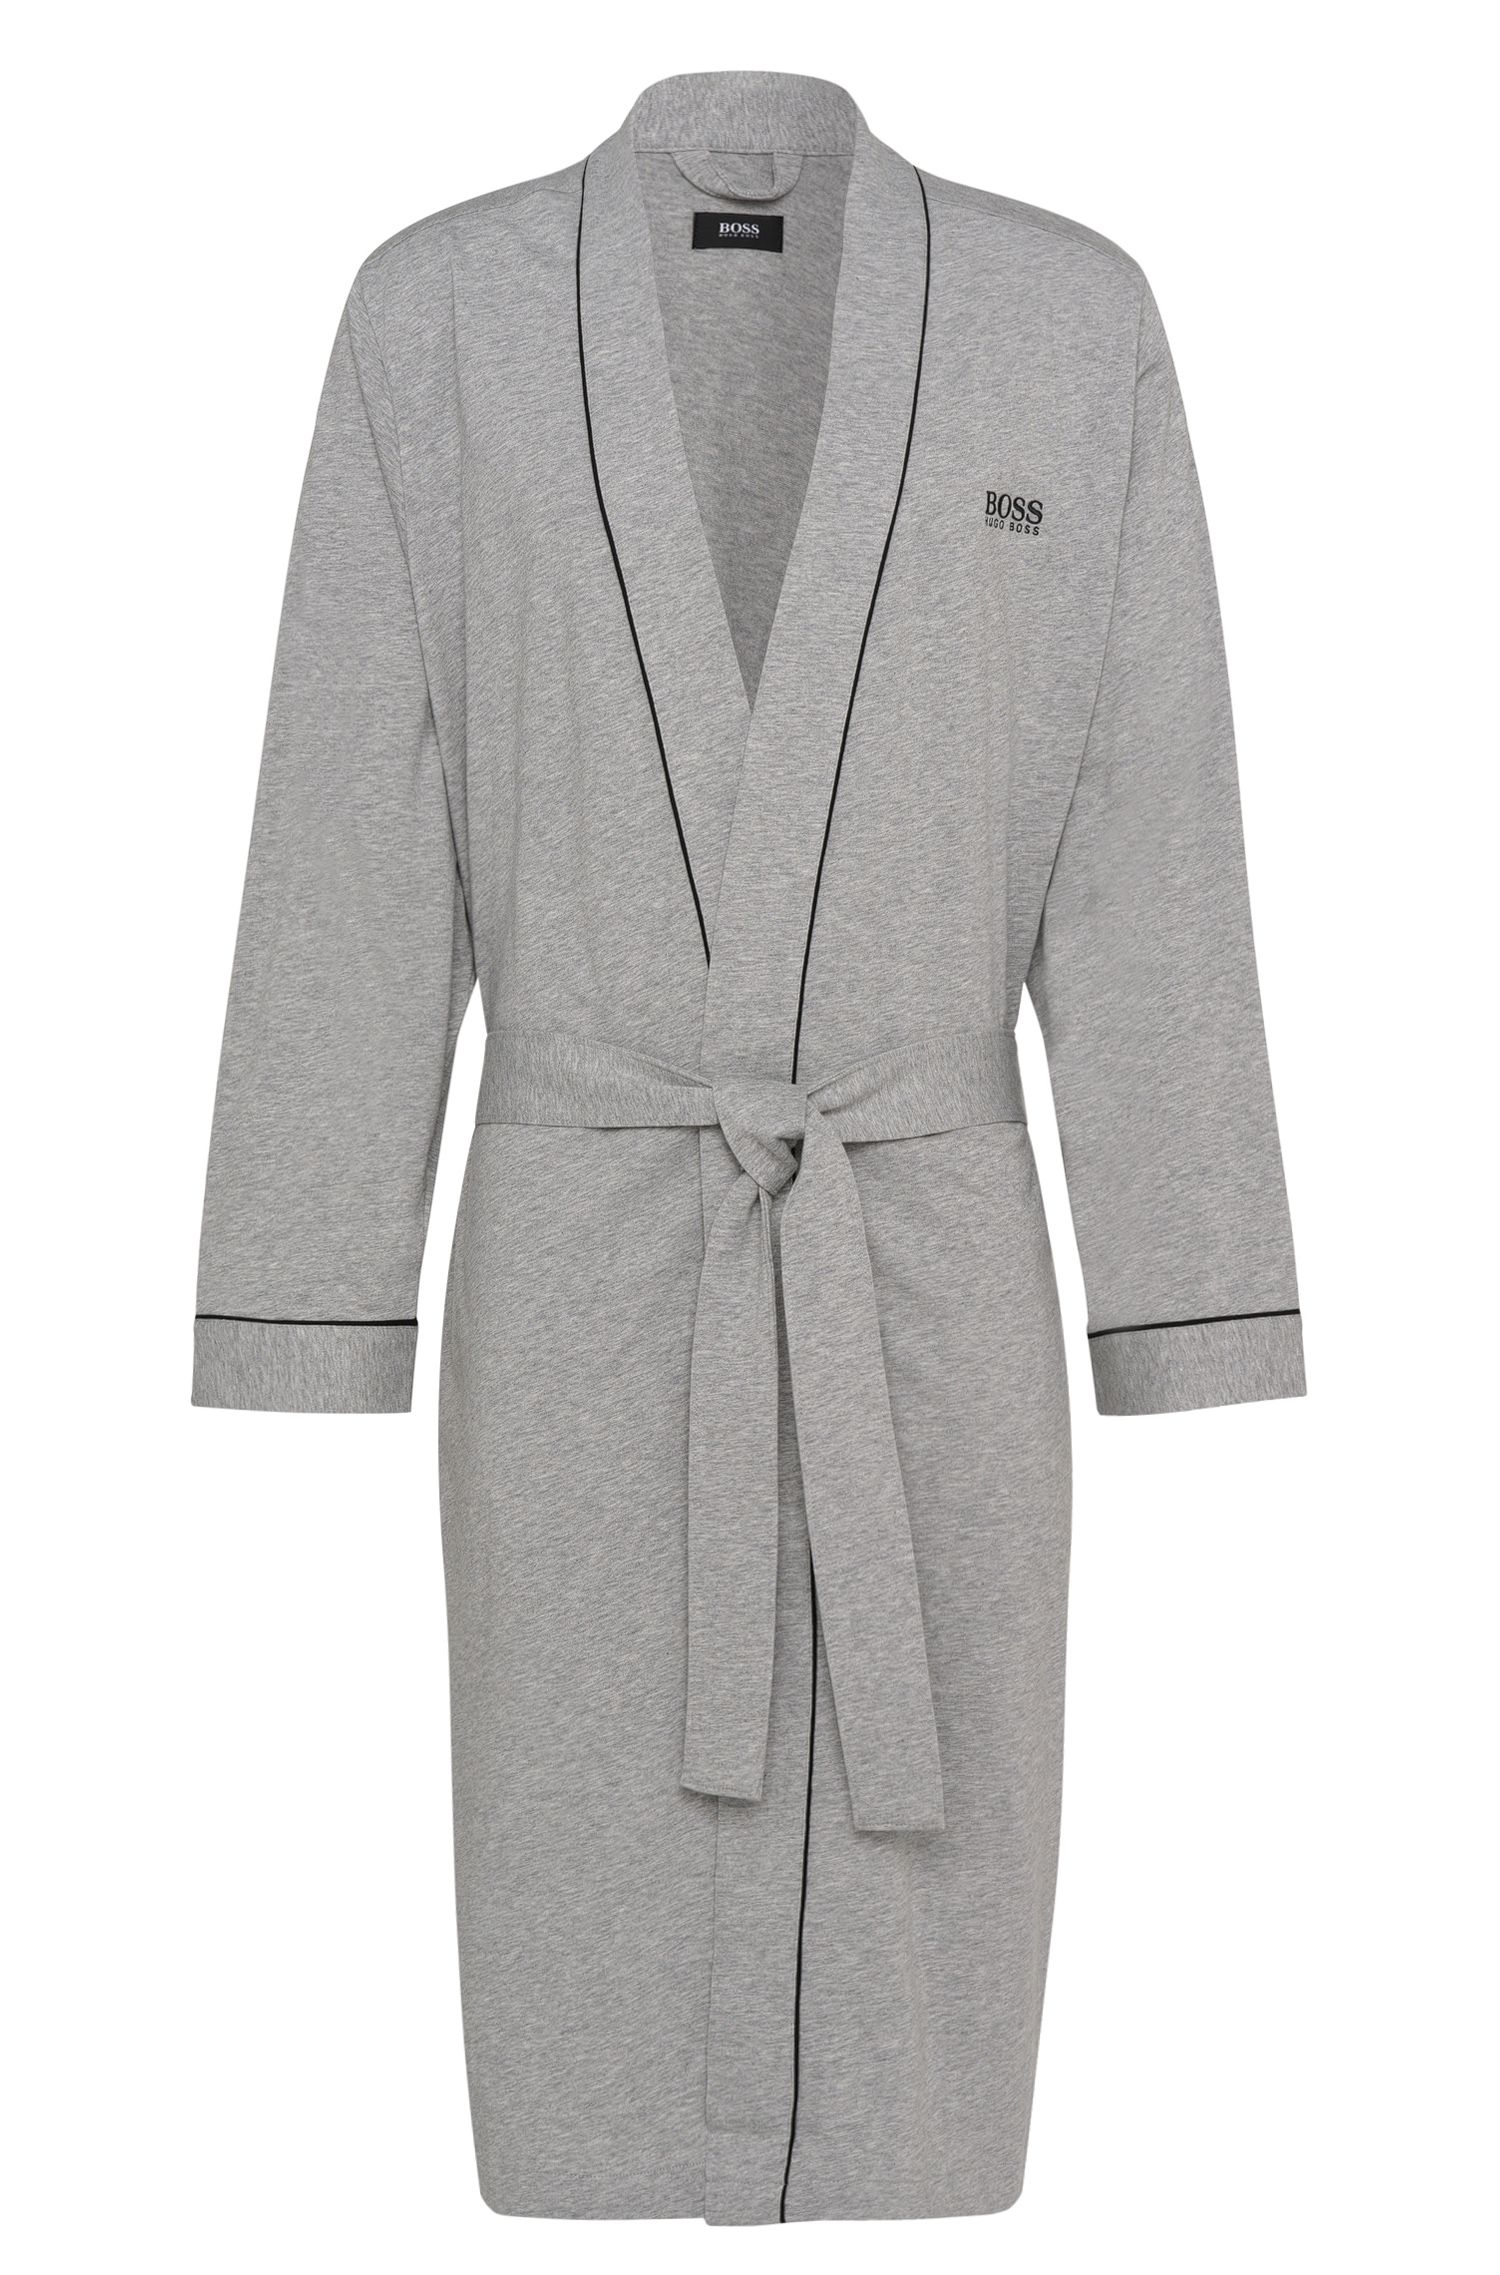 Cotton dressing gown with contrast piping by BOSS Menswear